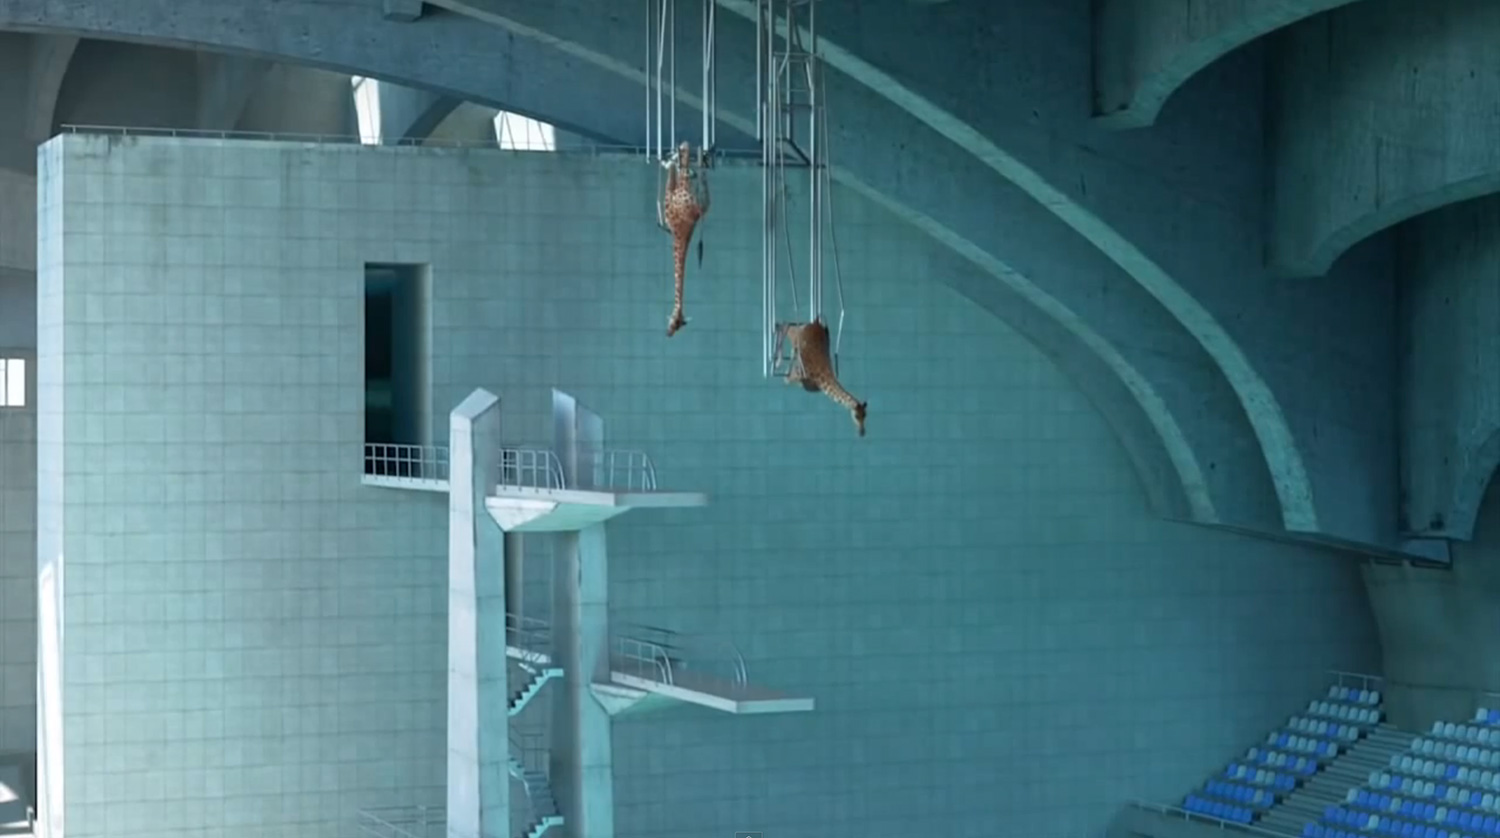 5m80: High Diving Giraffes by Cube Creative | Yellowtrace.